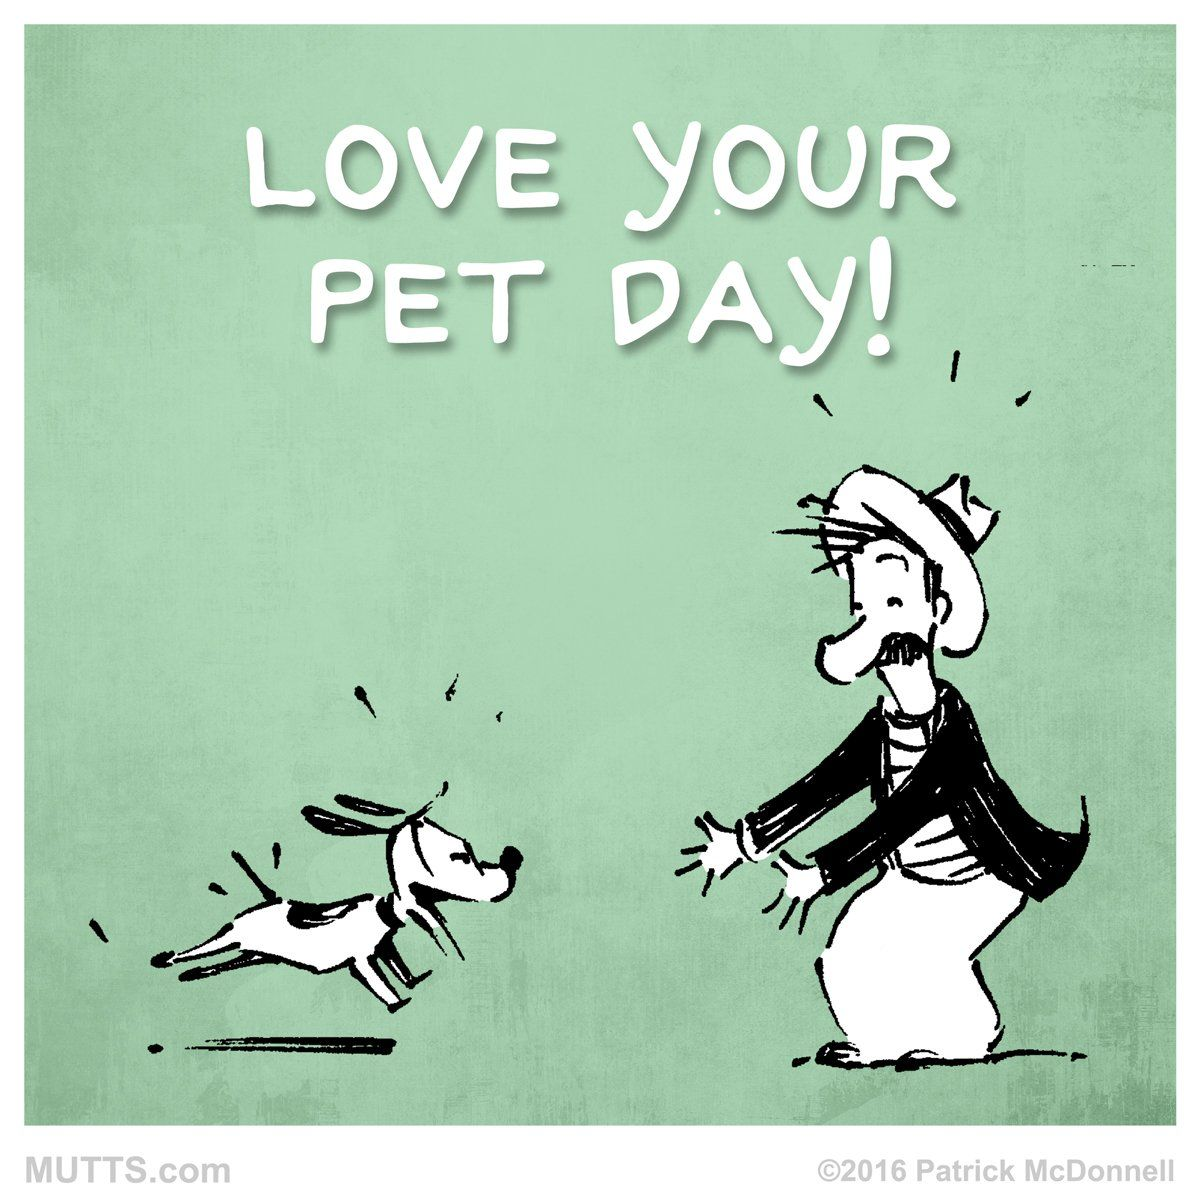 (472) LoveYourPetDay hashtag on Twitter Love your pet